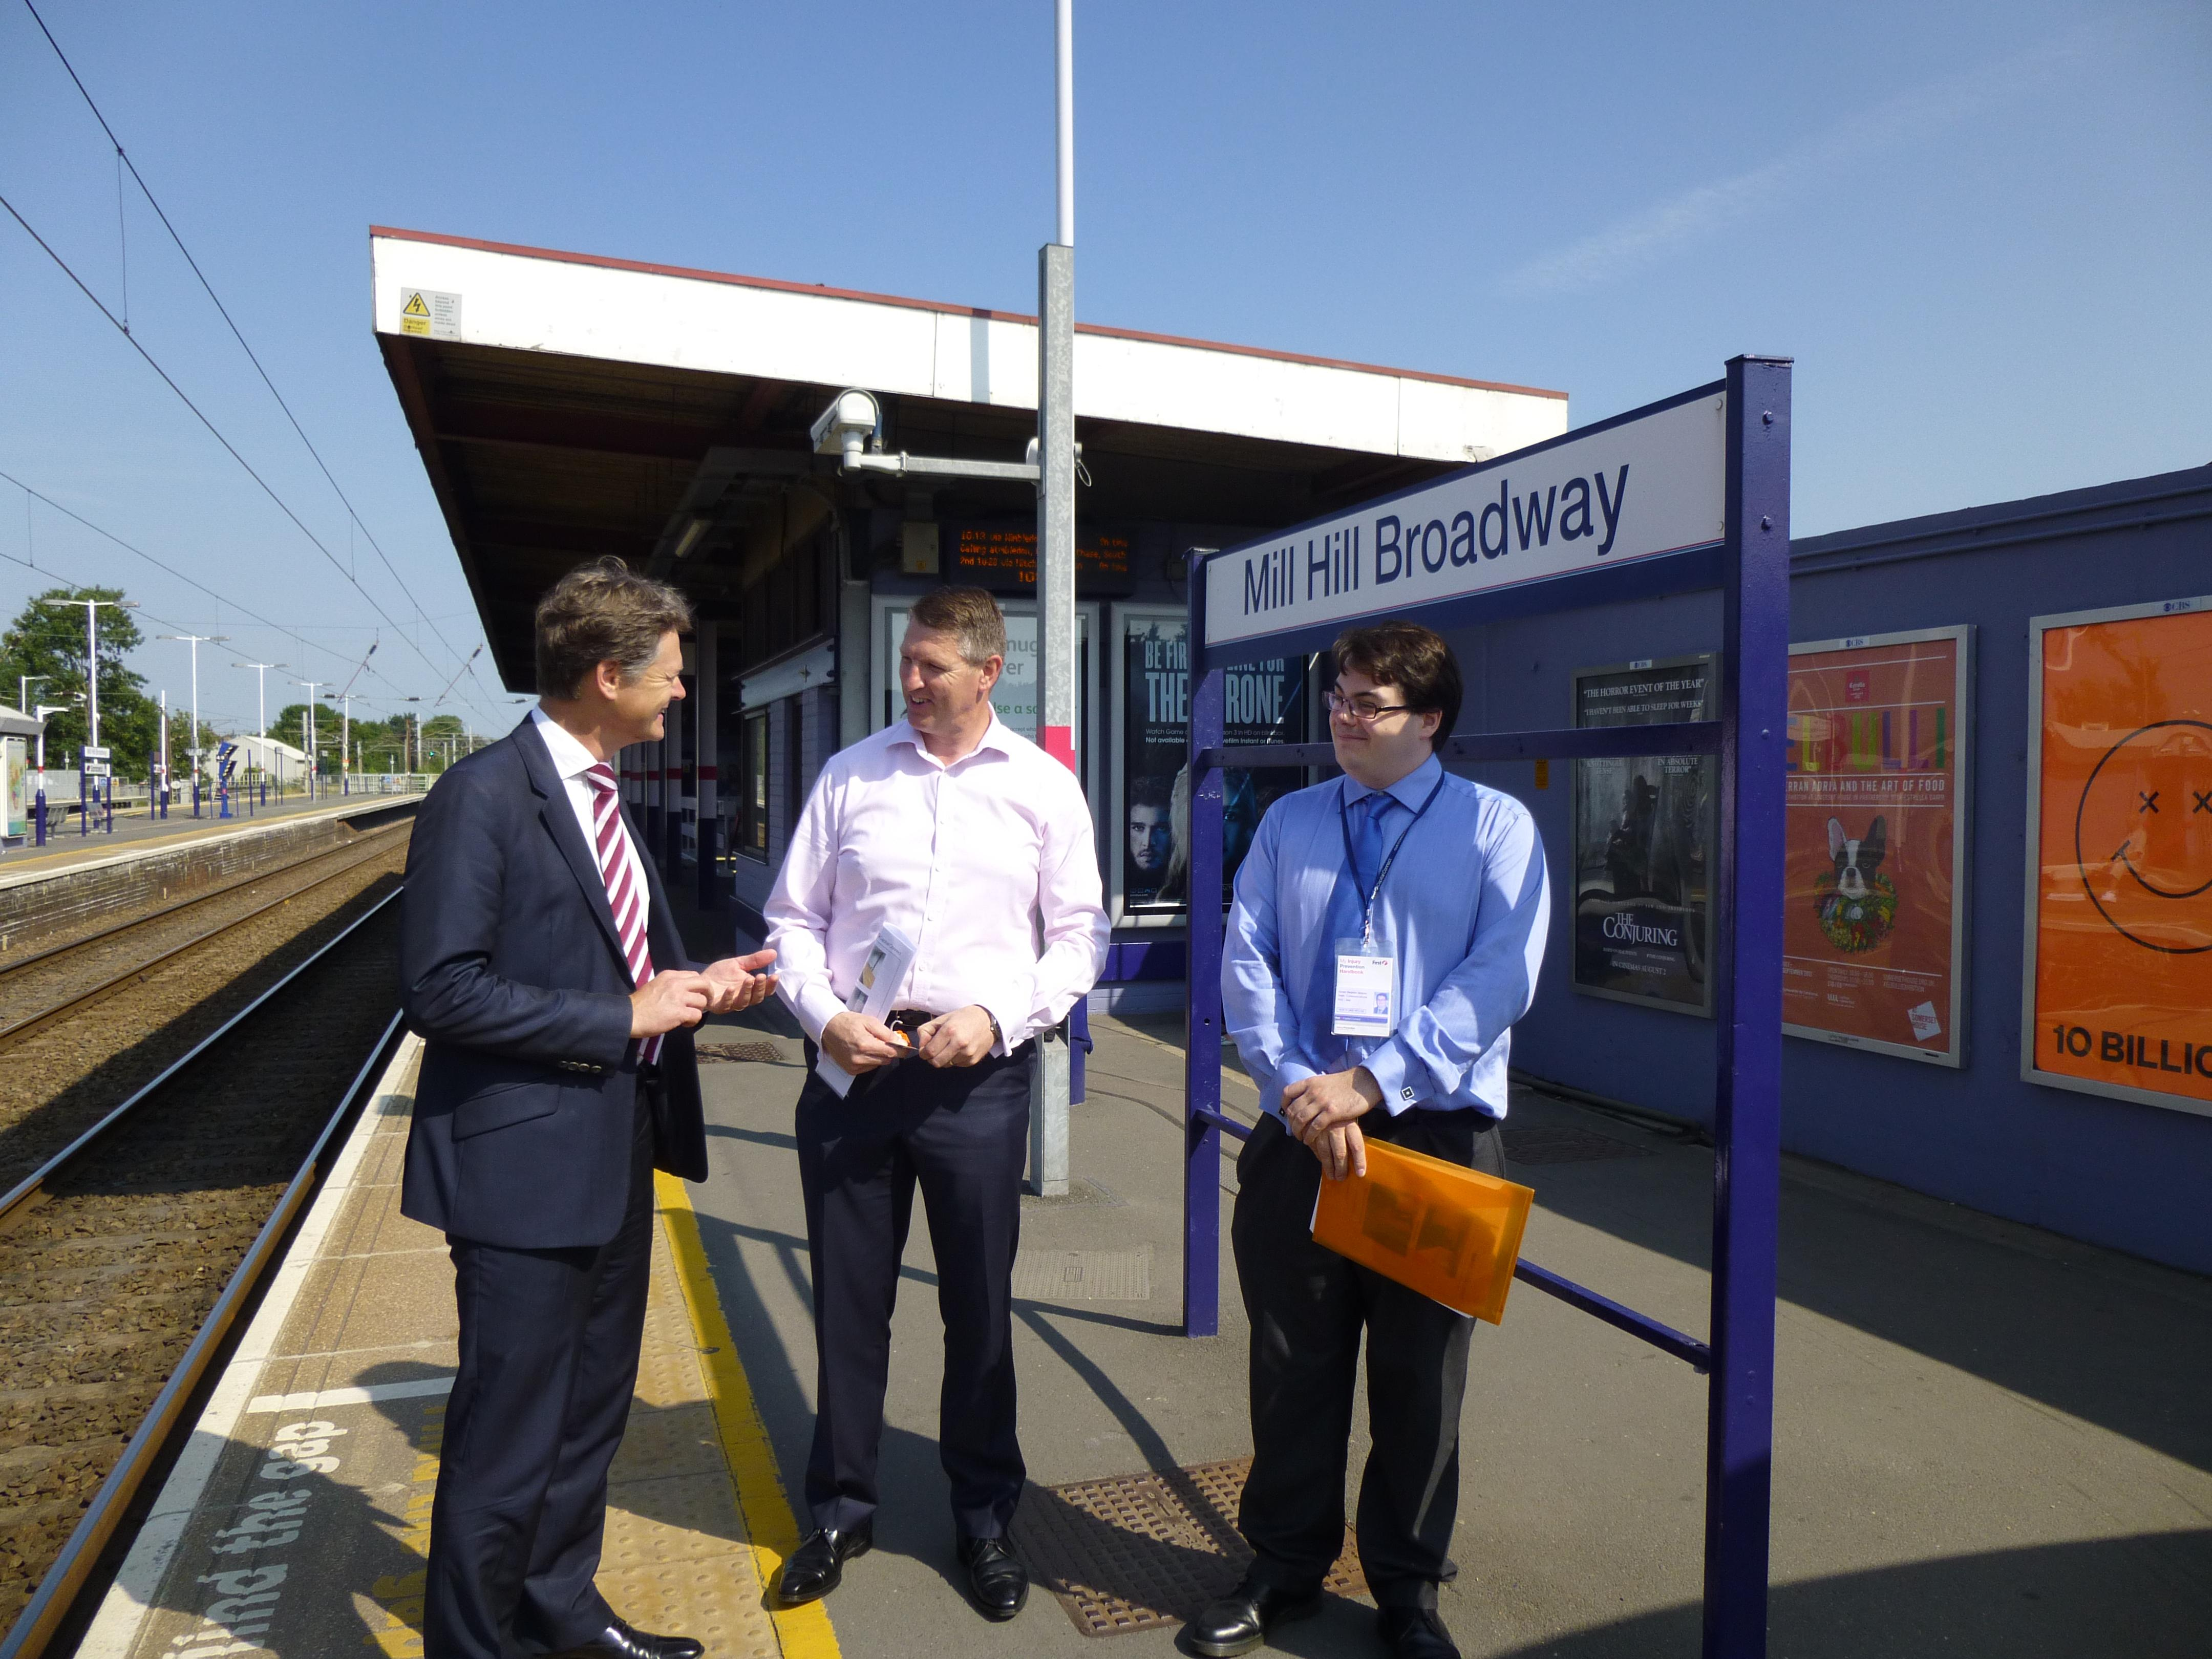 New Brighton Ford >> Step-Free Access at Mill Hill Broadway Station | Matthew Offord